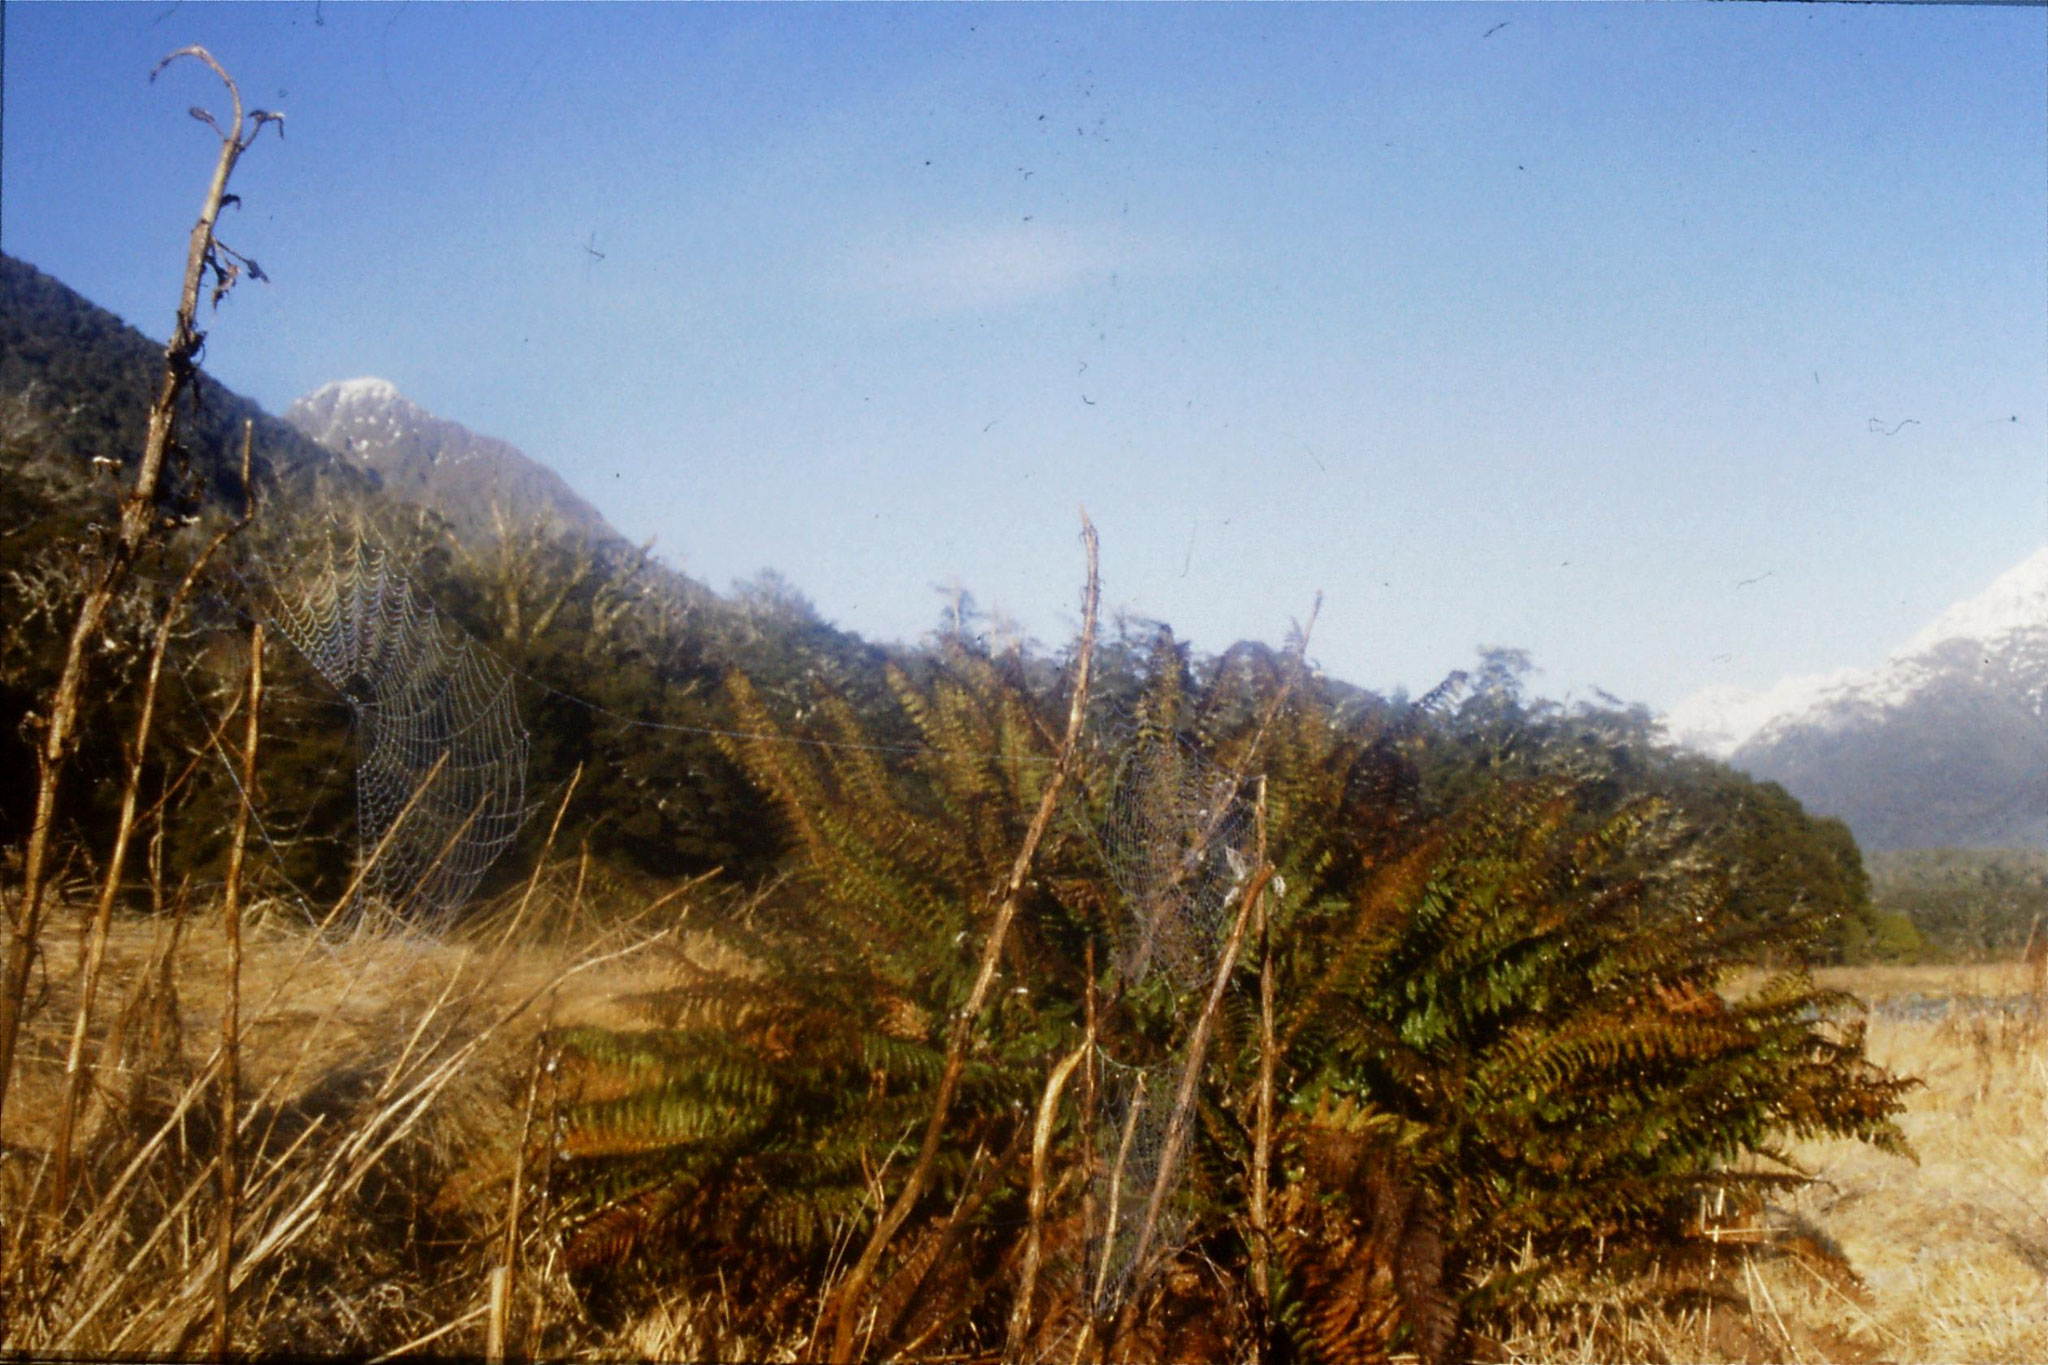 15/8/1990: 32: view from camp site